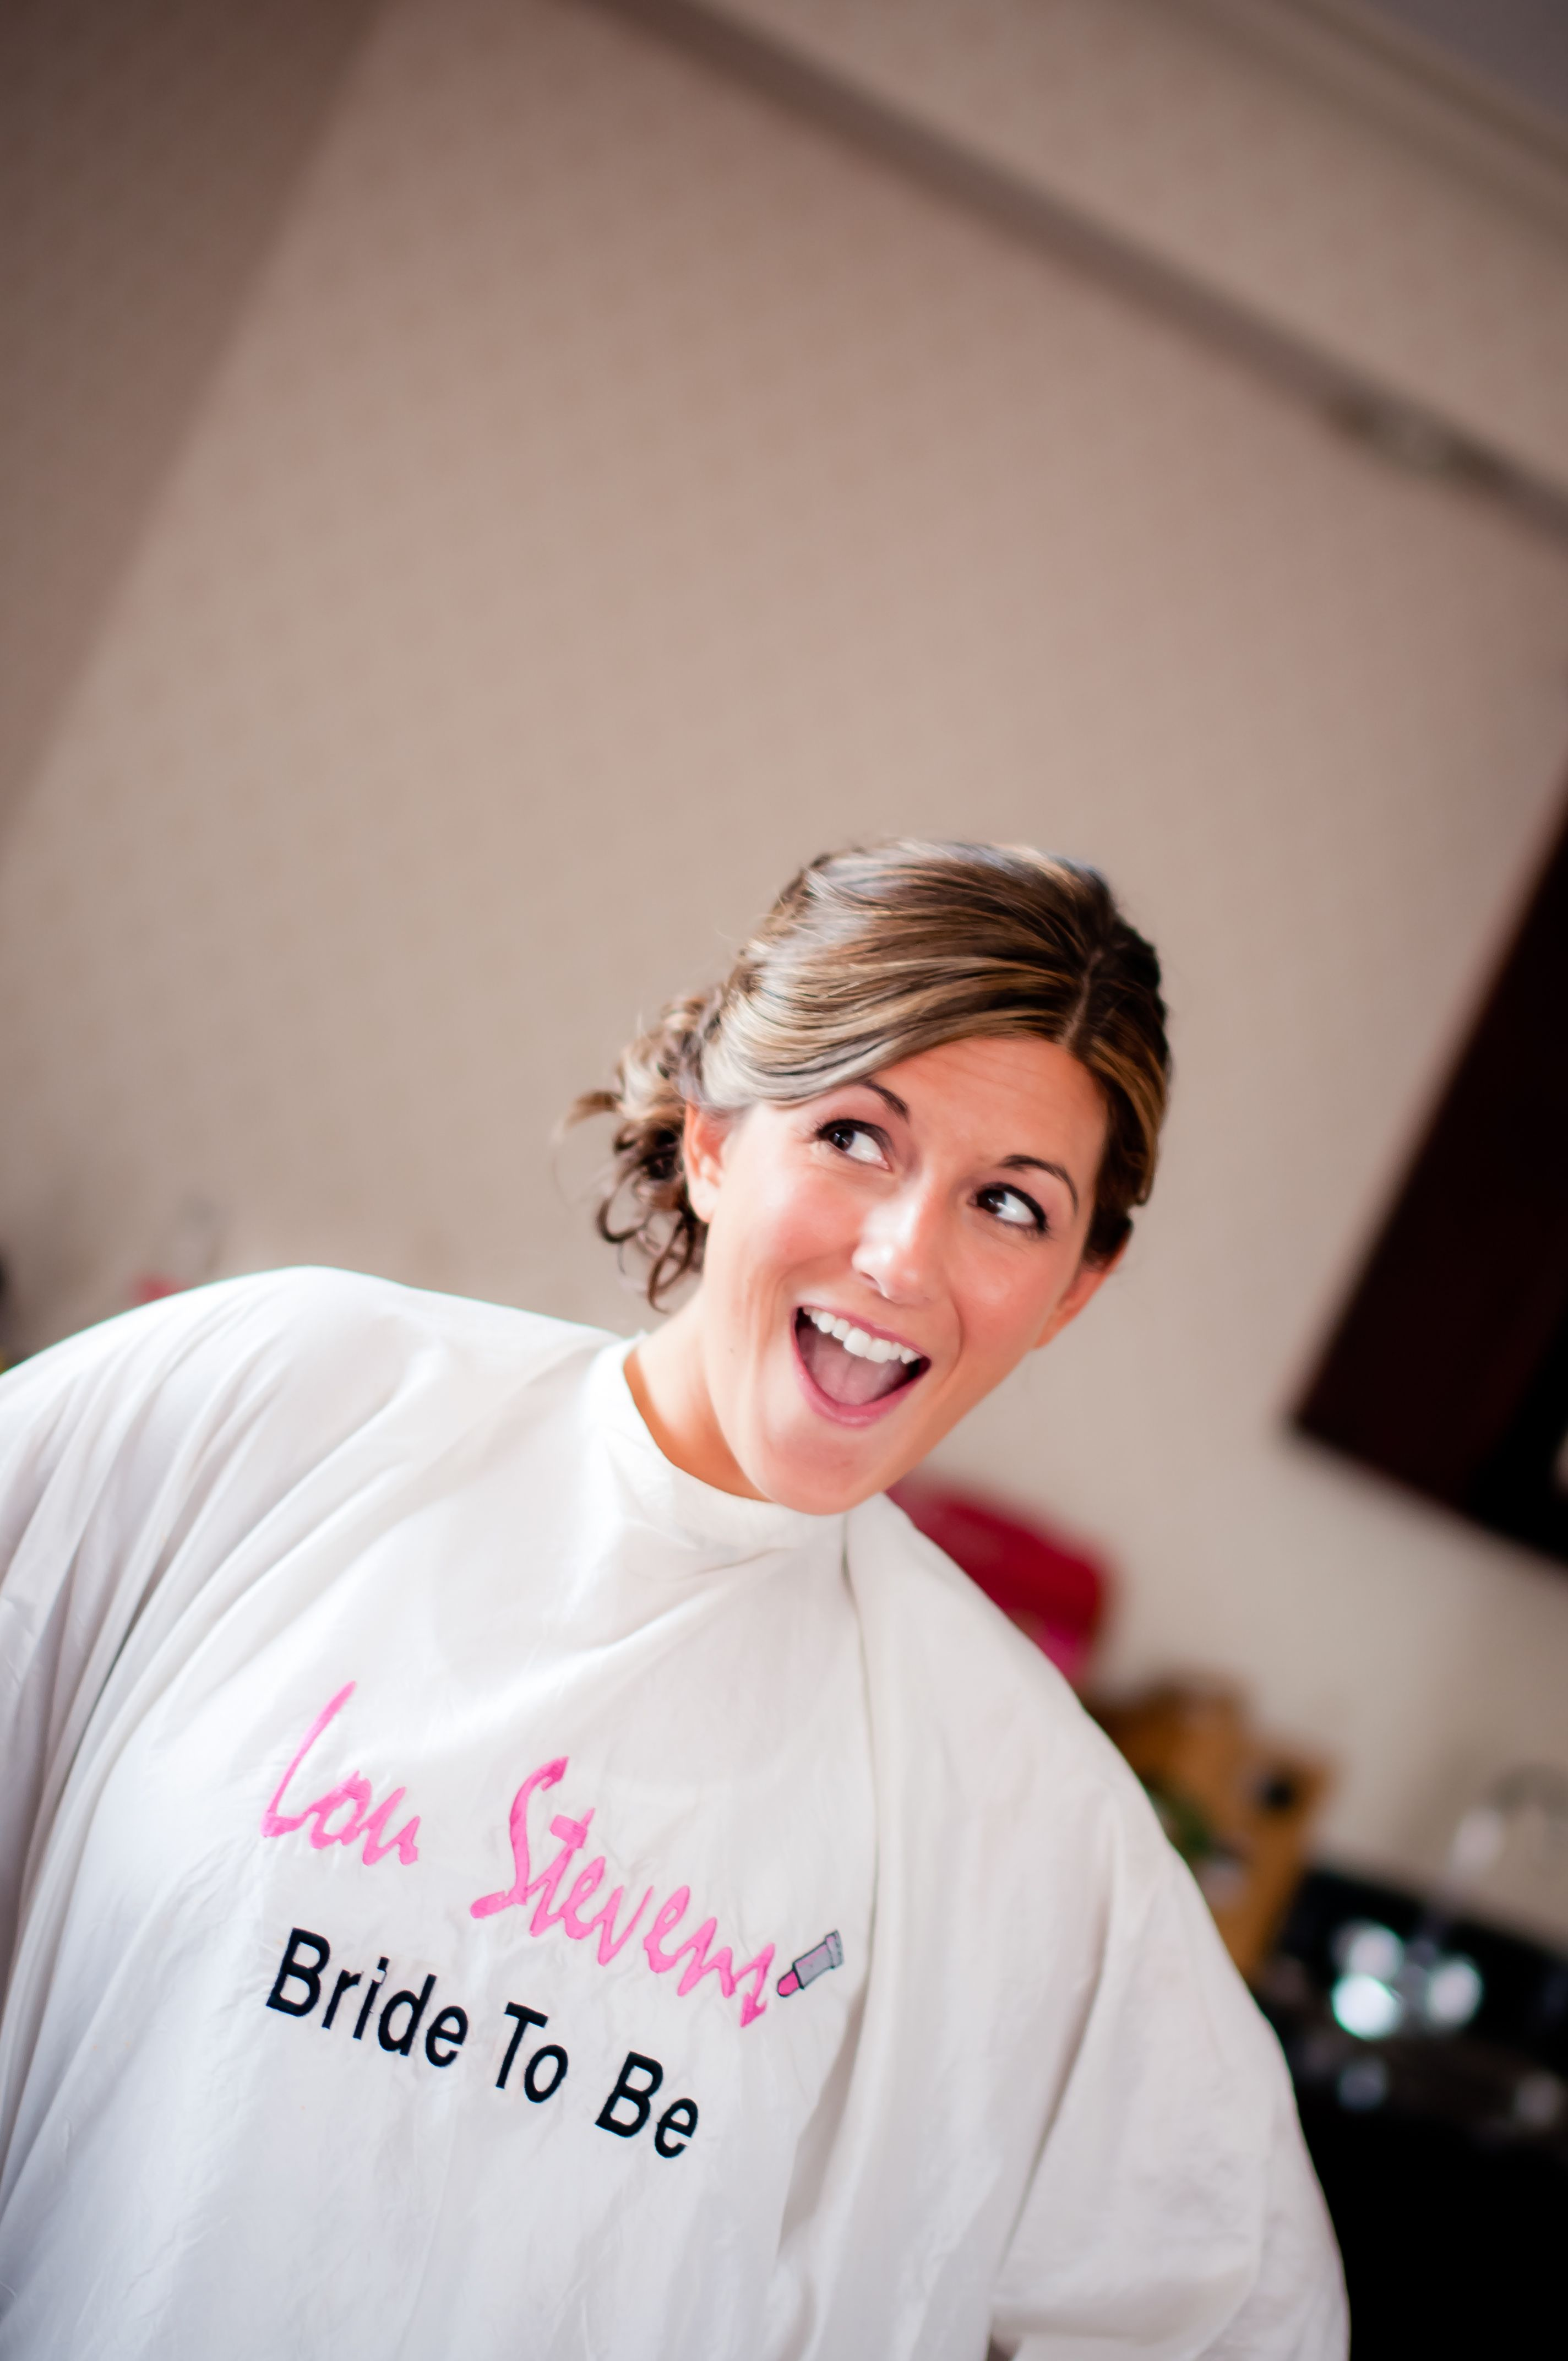 lou stevens glam squad - richmond weddings, richmond va wedding